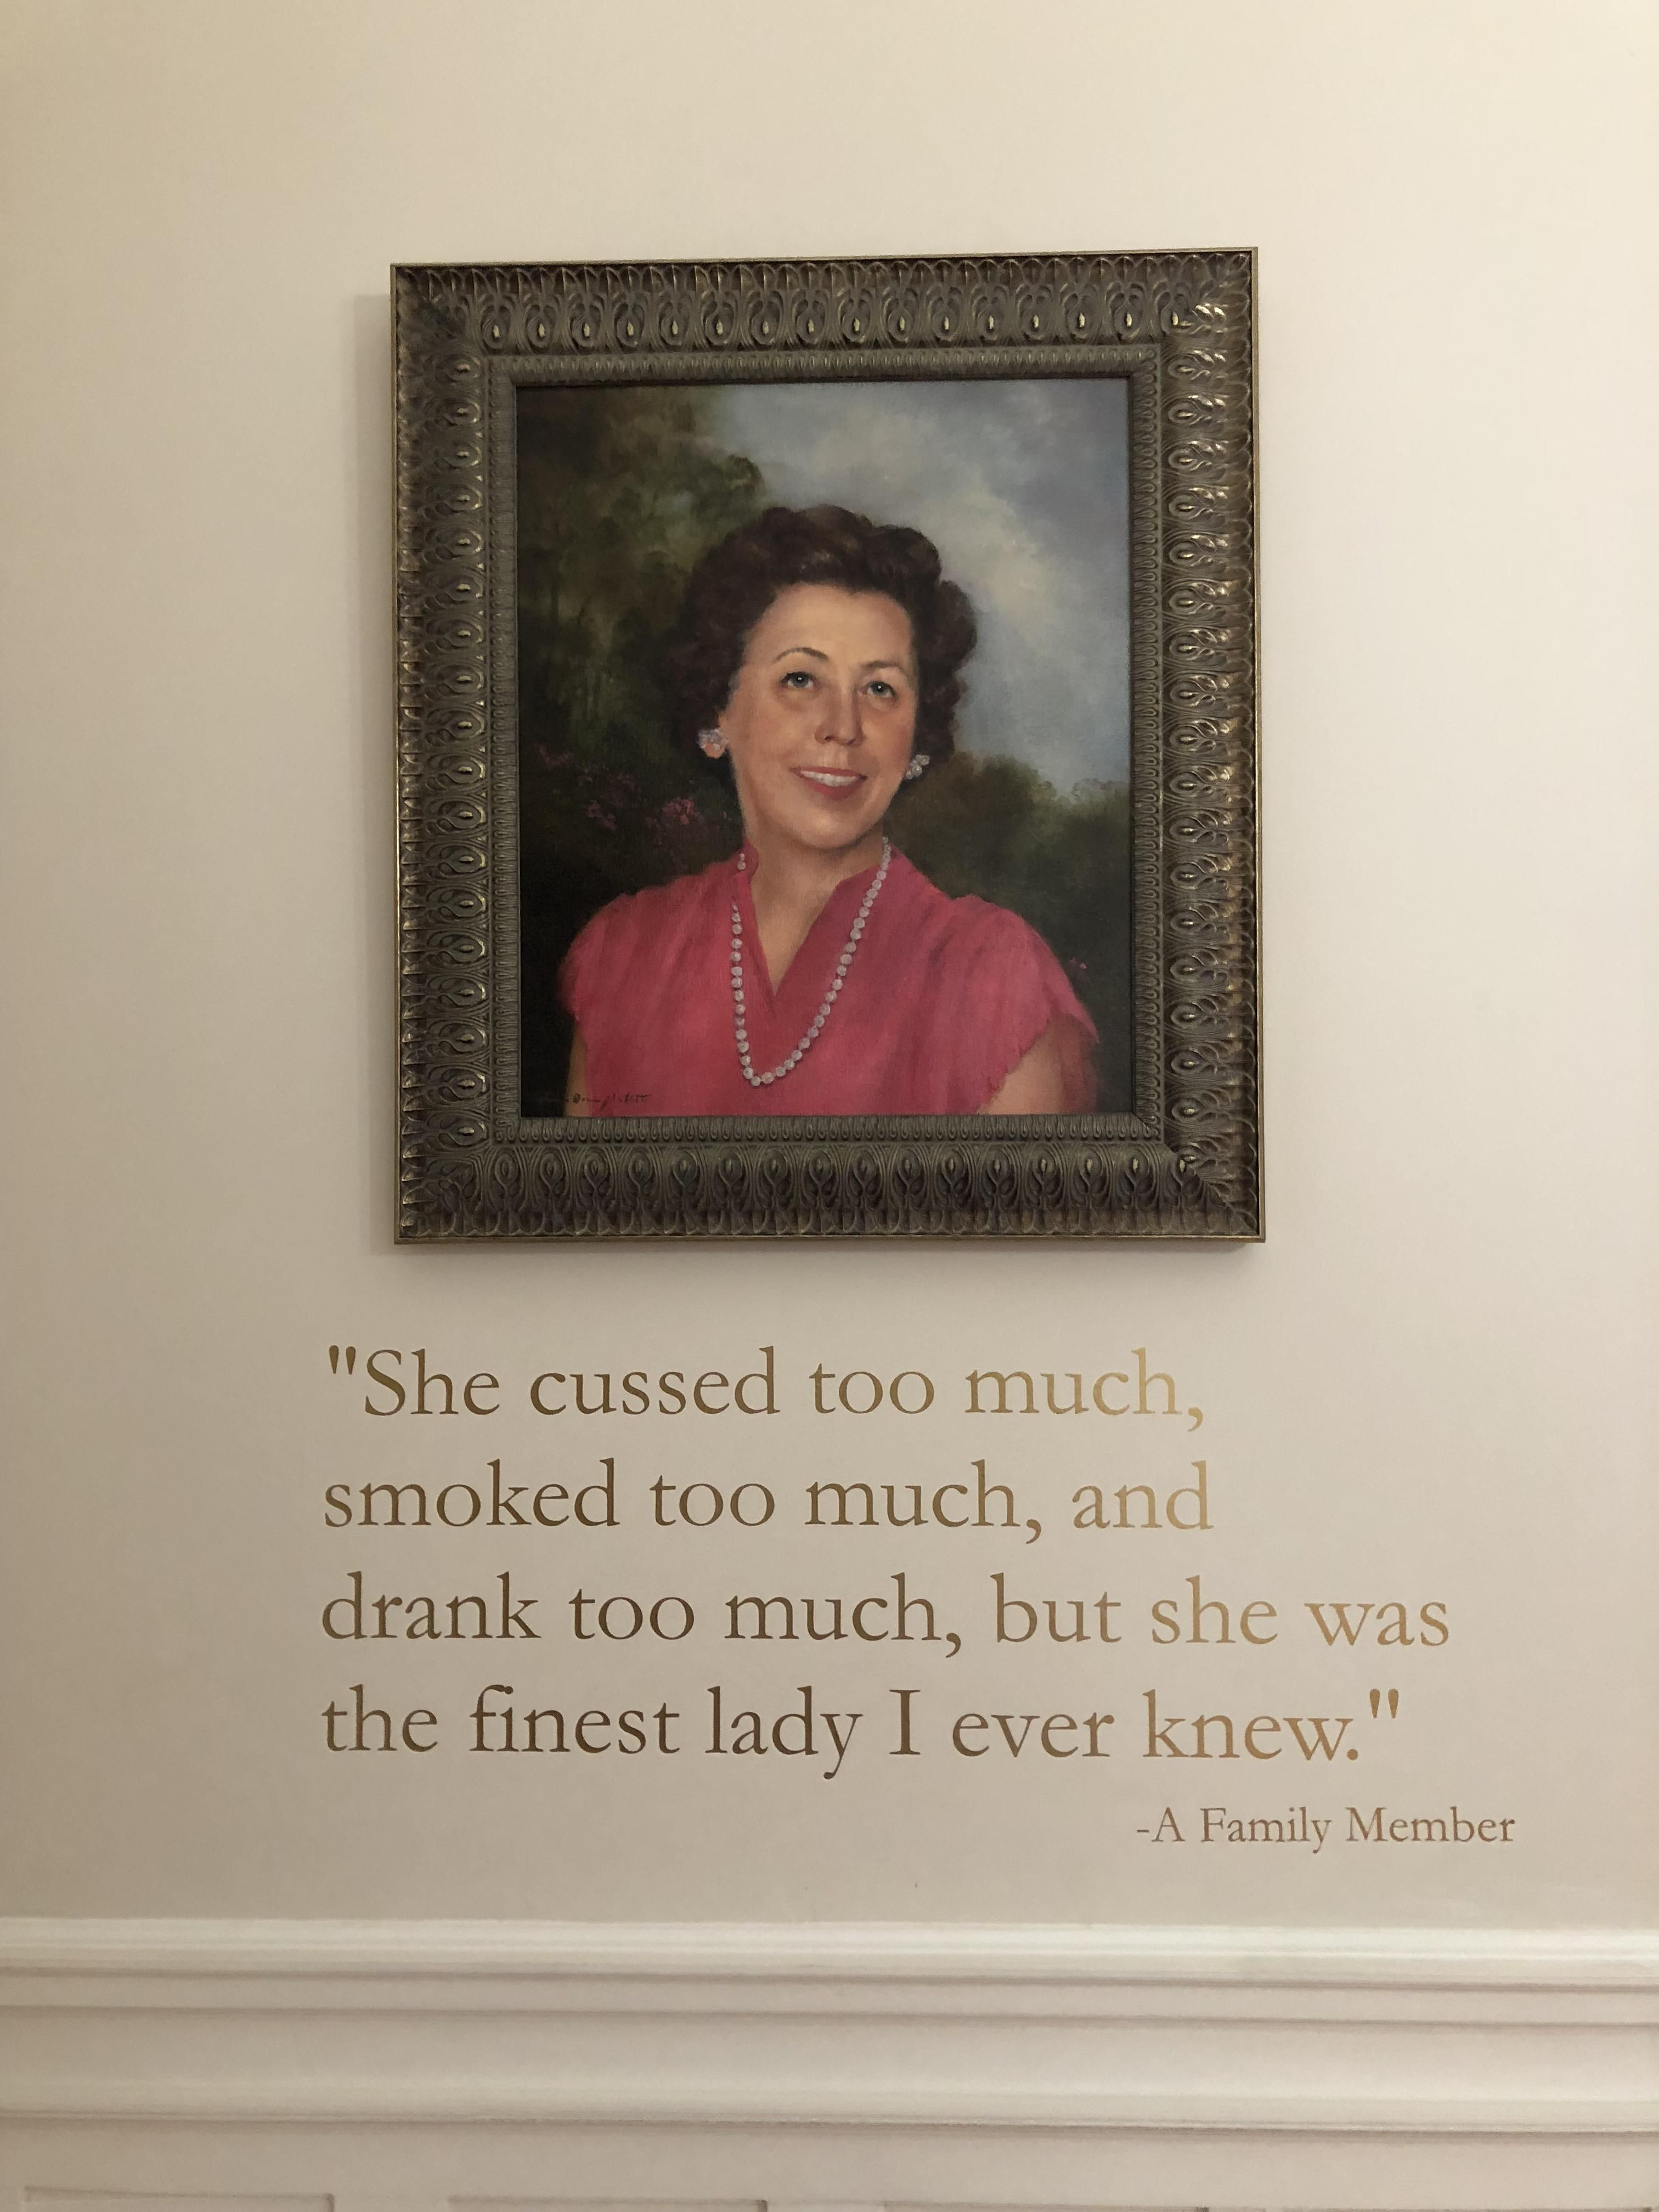 A memorial to a benefactor at a little museum in Mobile, AL. I wish I could have met this lady.